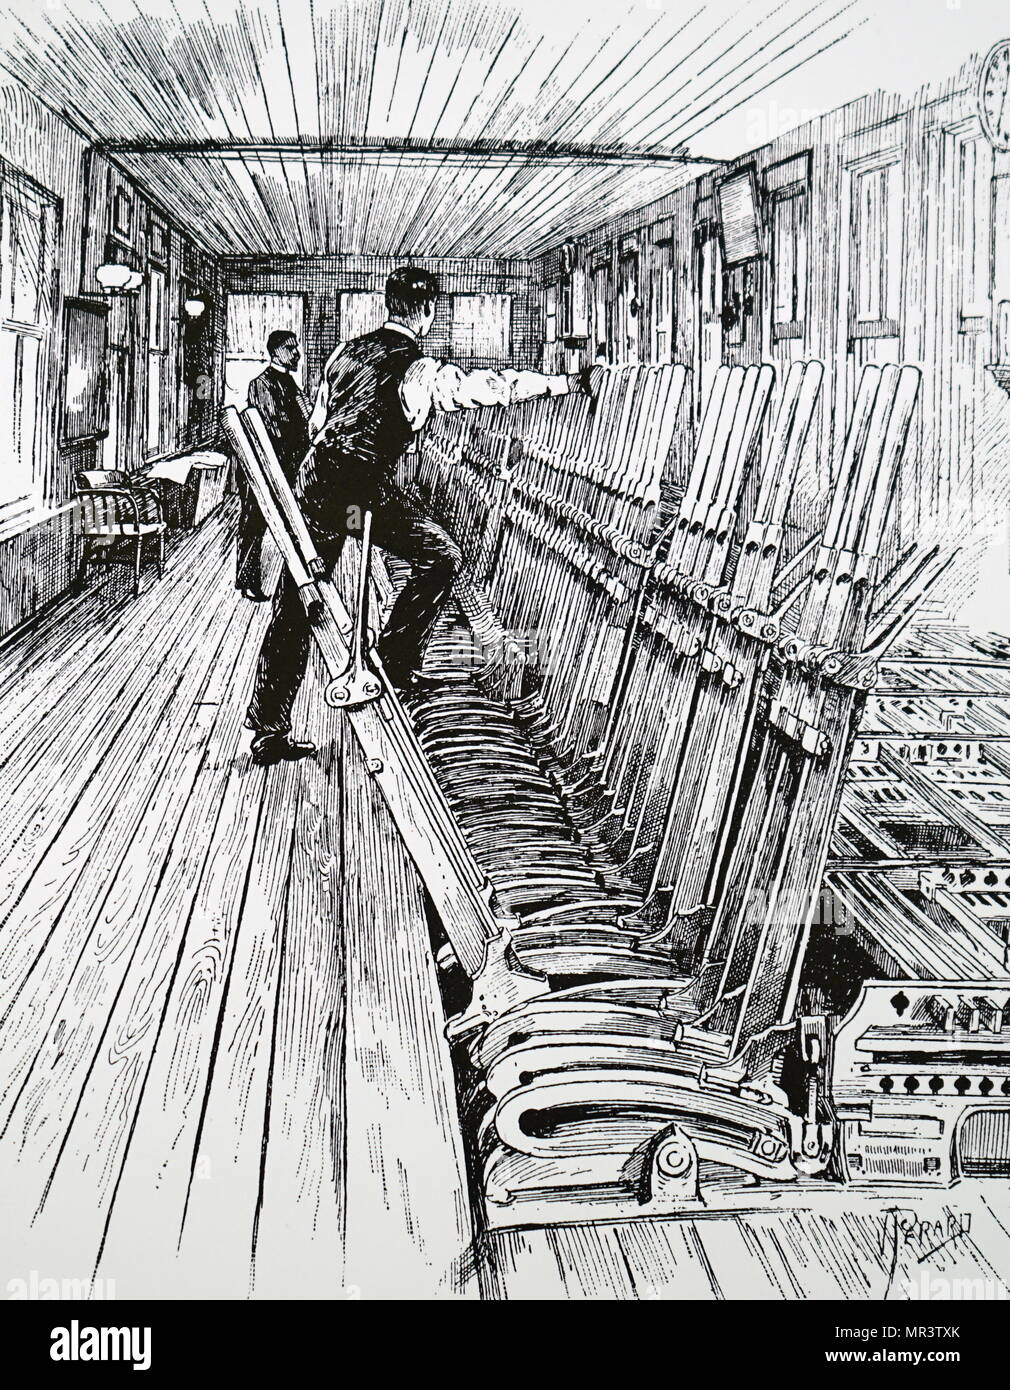 Illustration depicting a bank of interlocking levers in a signal box. Dated 19th century - Stock Image